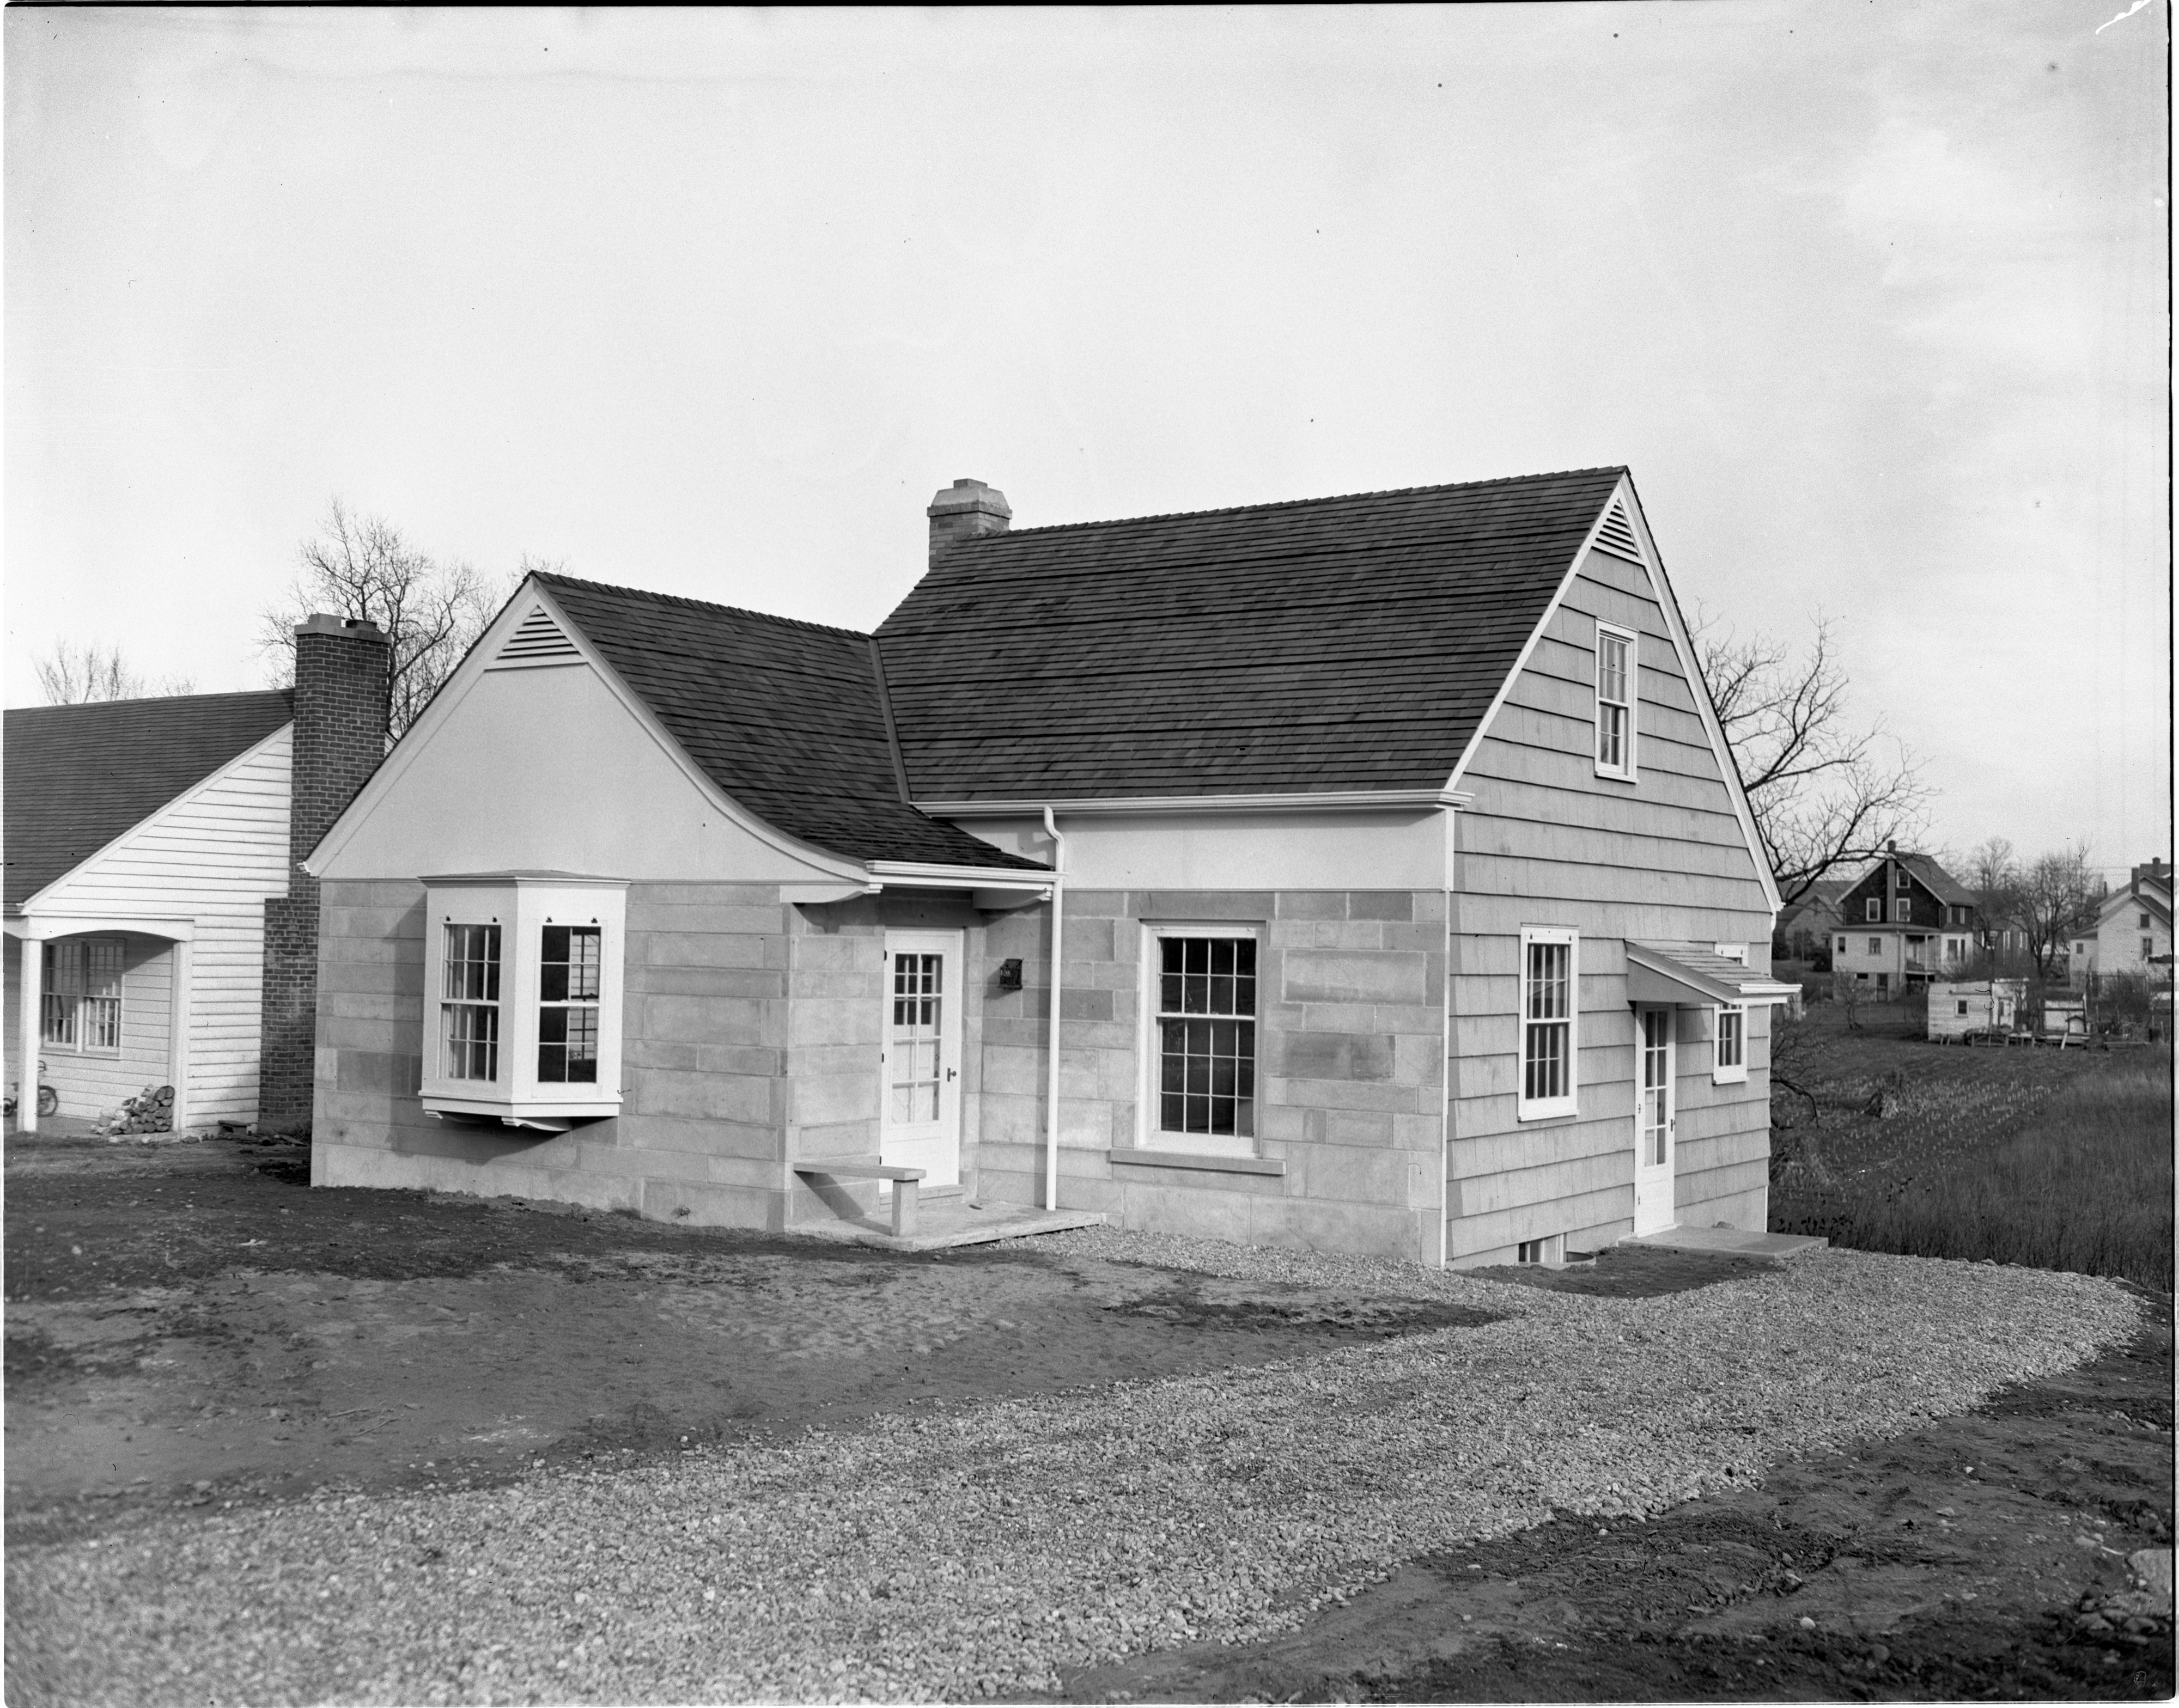 803 Mt. Pleasant Avenue - New Home Built By Ann Arbor High School Students, December 1946 image